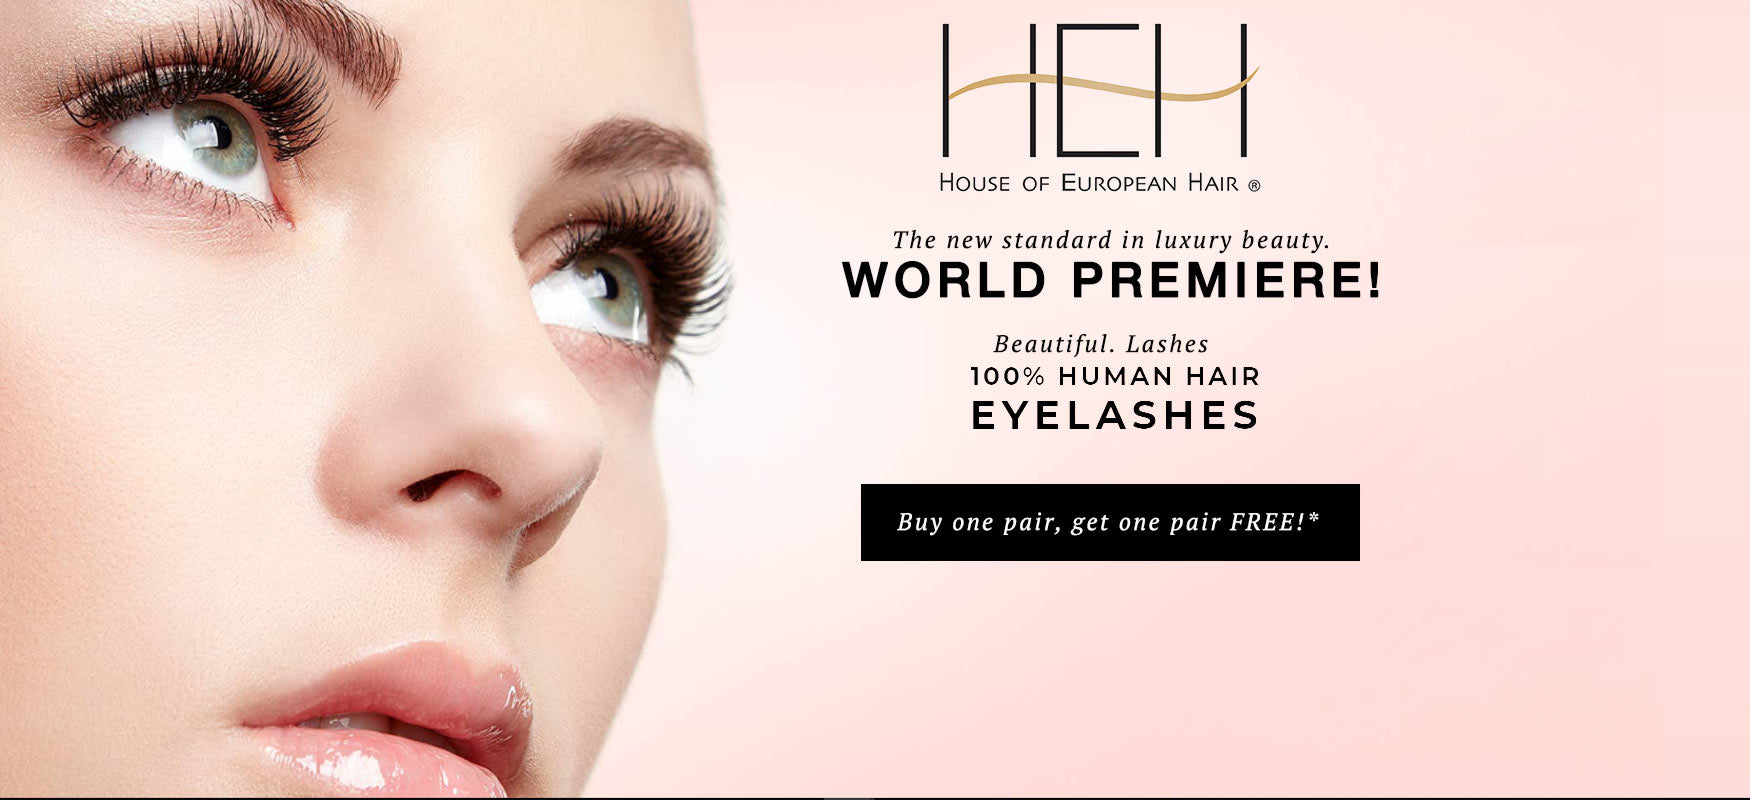 Beautiful. Lashes. 100% Human Hair, Long Lasting Luxury Eyelashes